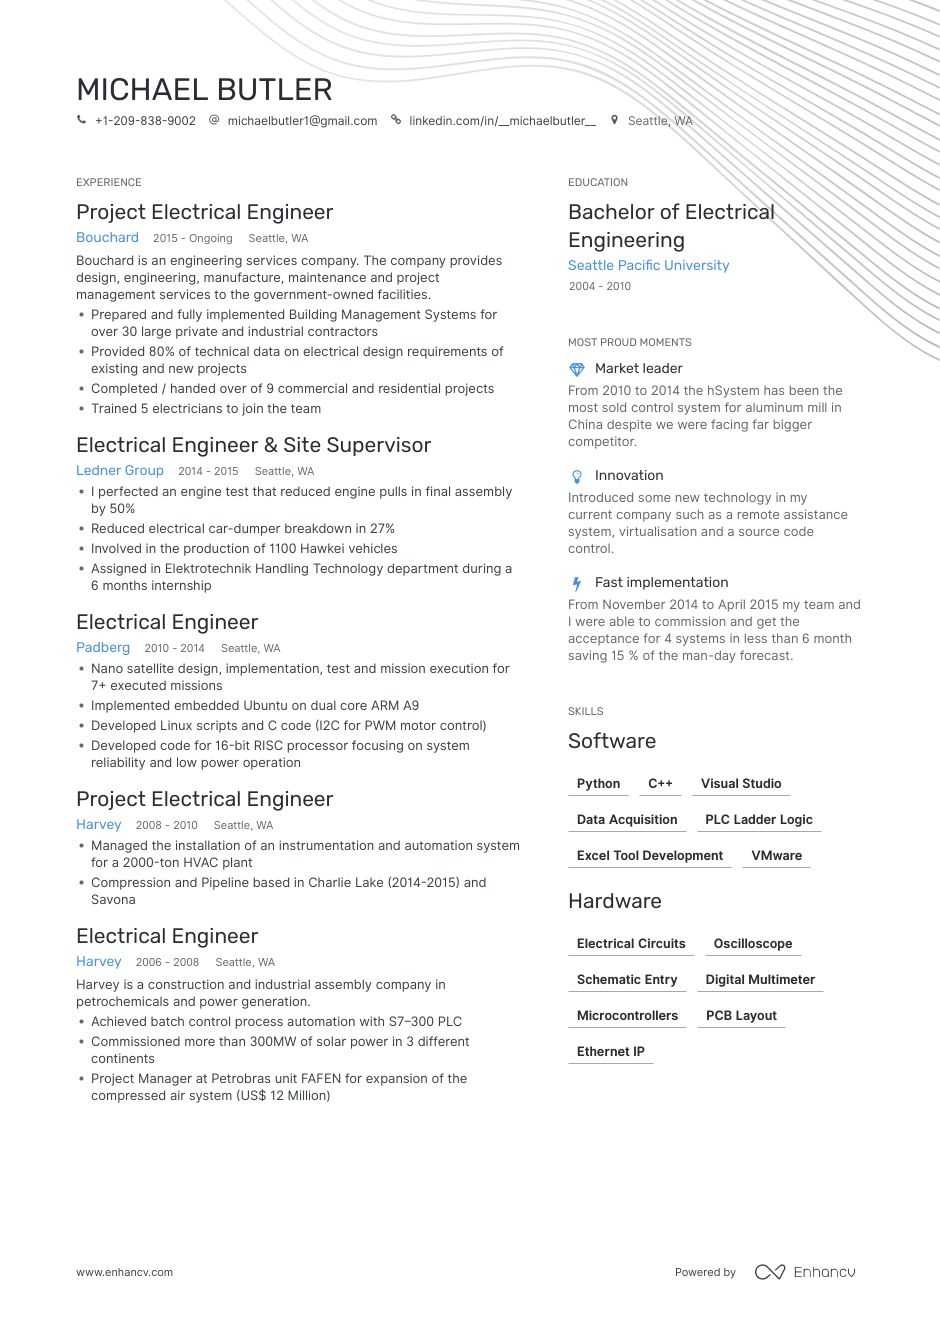 electrical engineer resume examples pro tips featured enhancv electronic engineering Resume Electronic Engineering Technology Resume